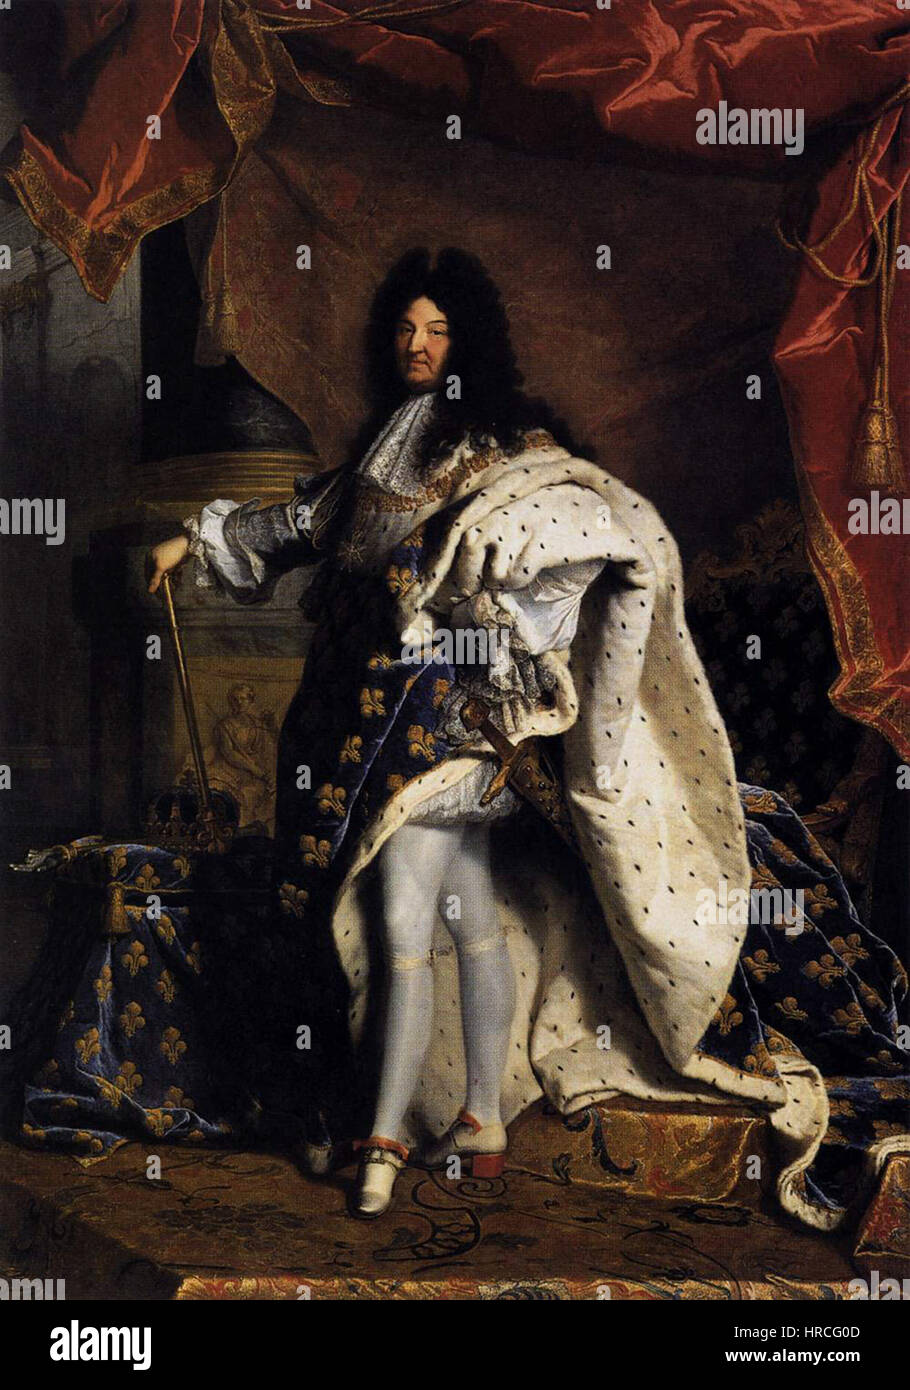 louis xiv rigaud stockfotos louis xiv rigaud bilder alamy. Black Bedroom Furniture Sets. Home Design Ideas